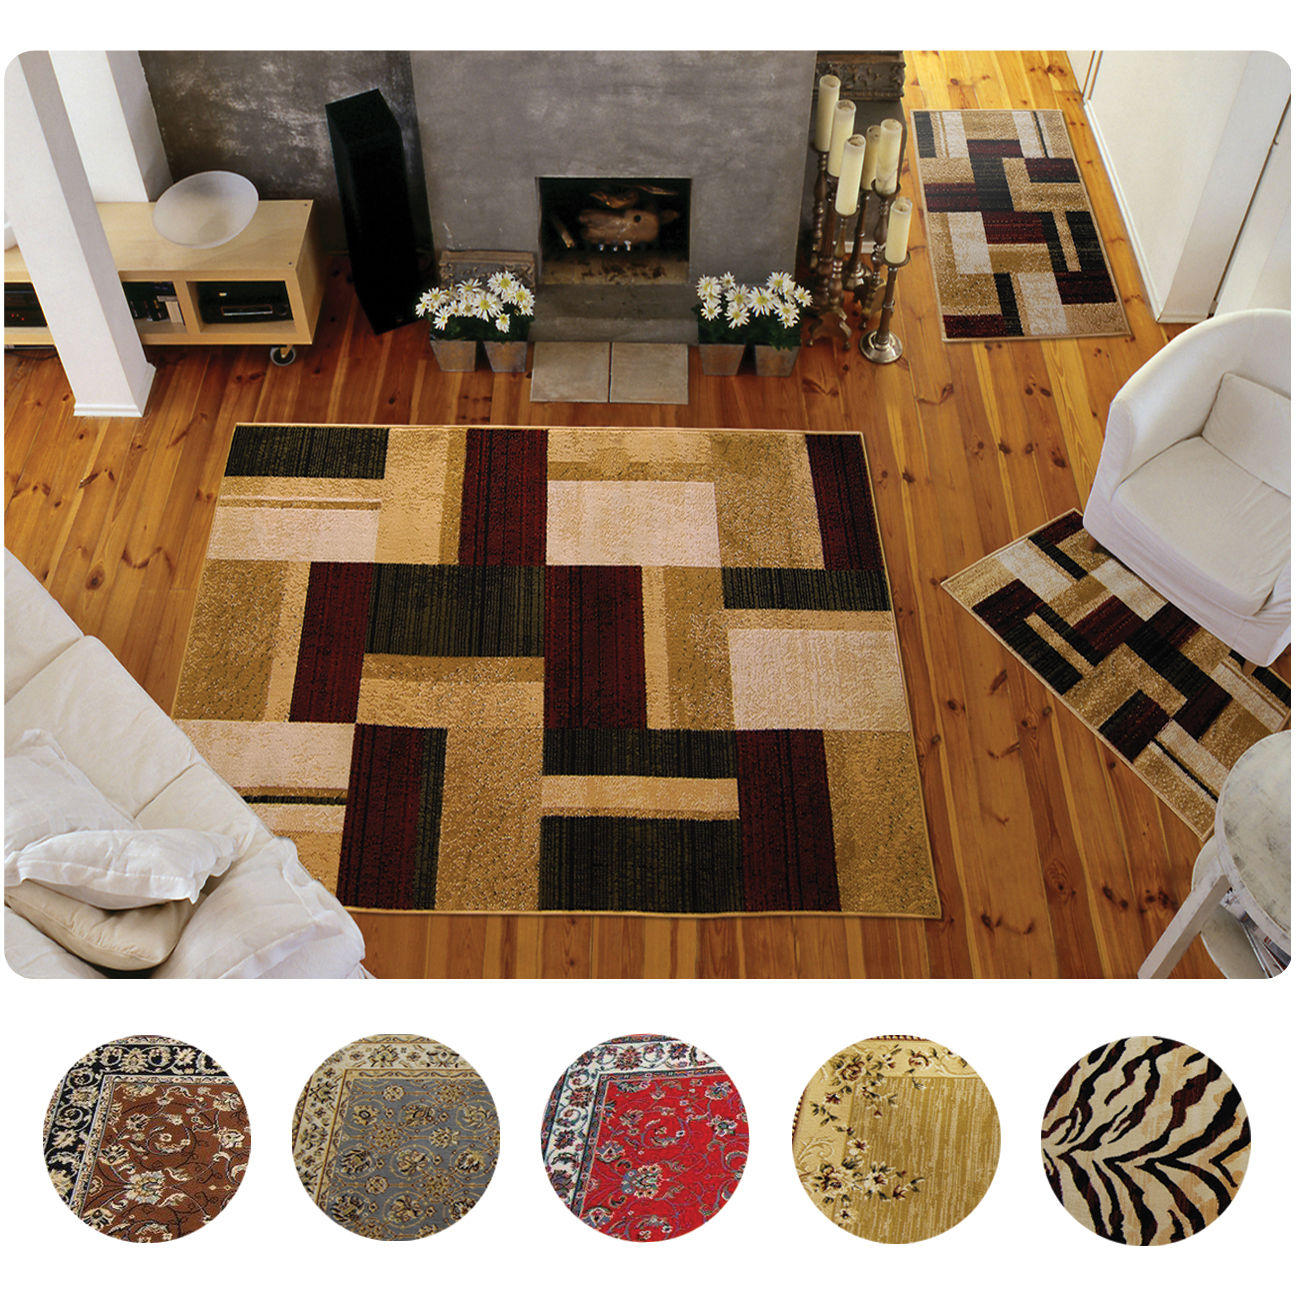 $39.99 3 Piece Set Modern or Traditional Area Rugs Scatter Throw Carpet Mat